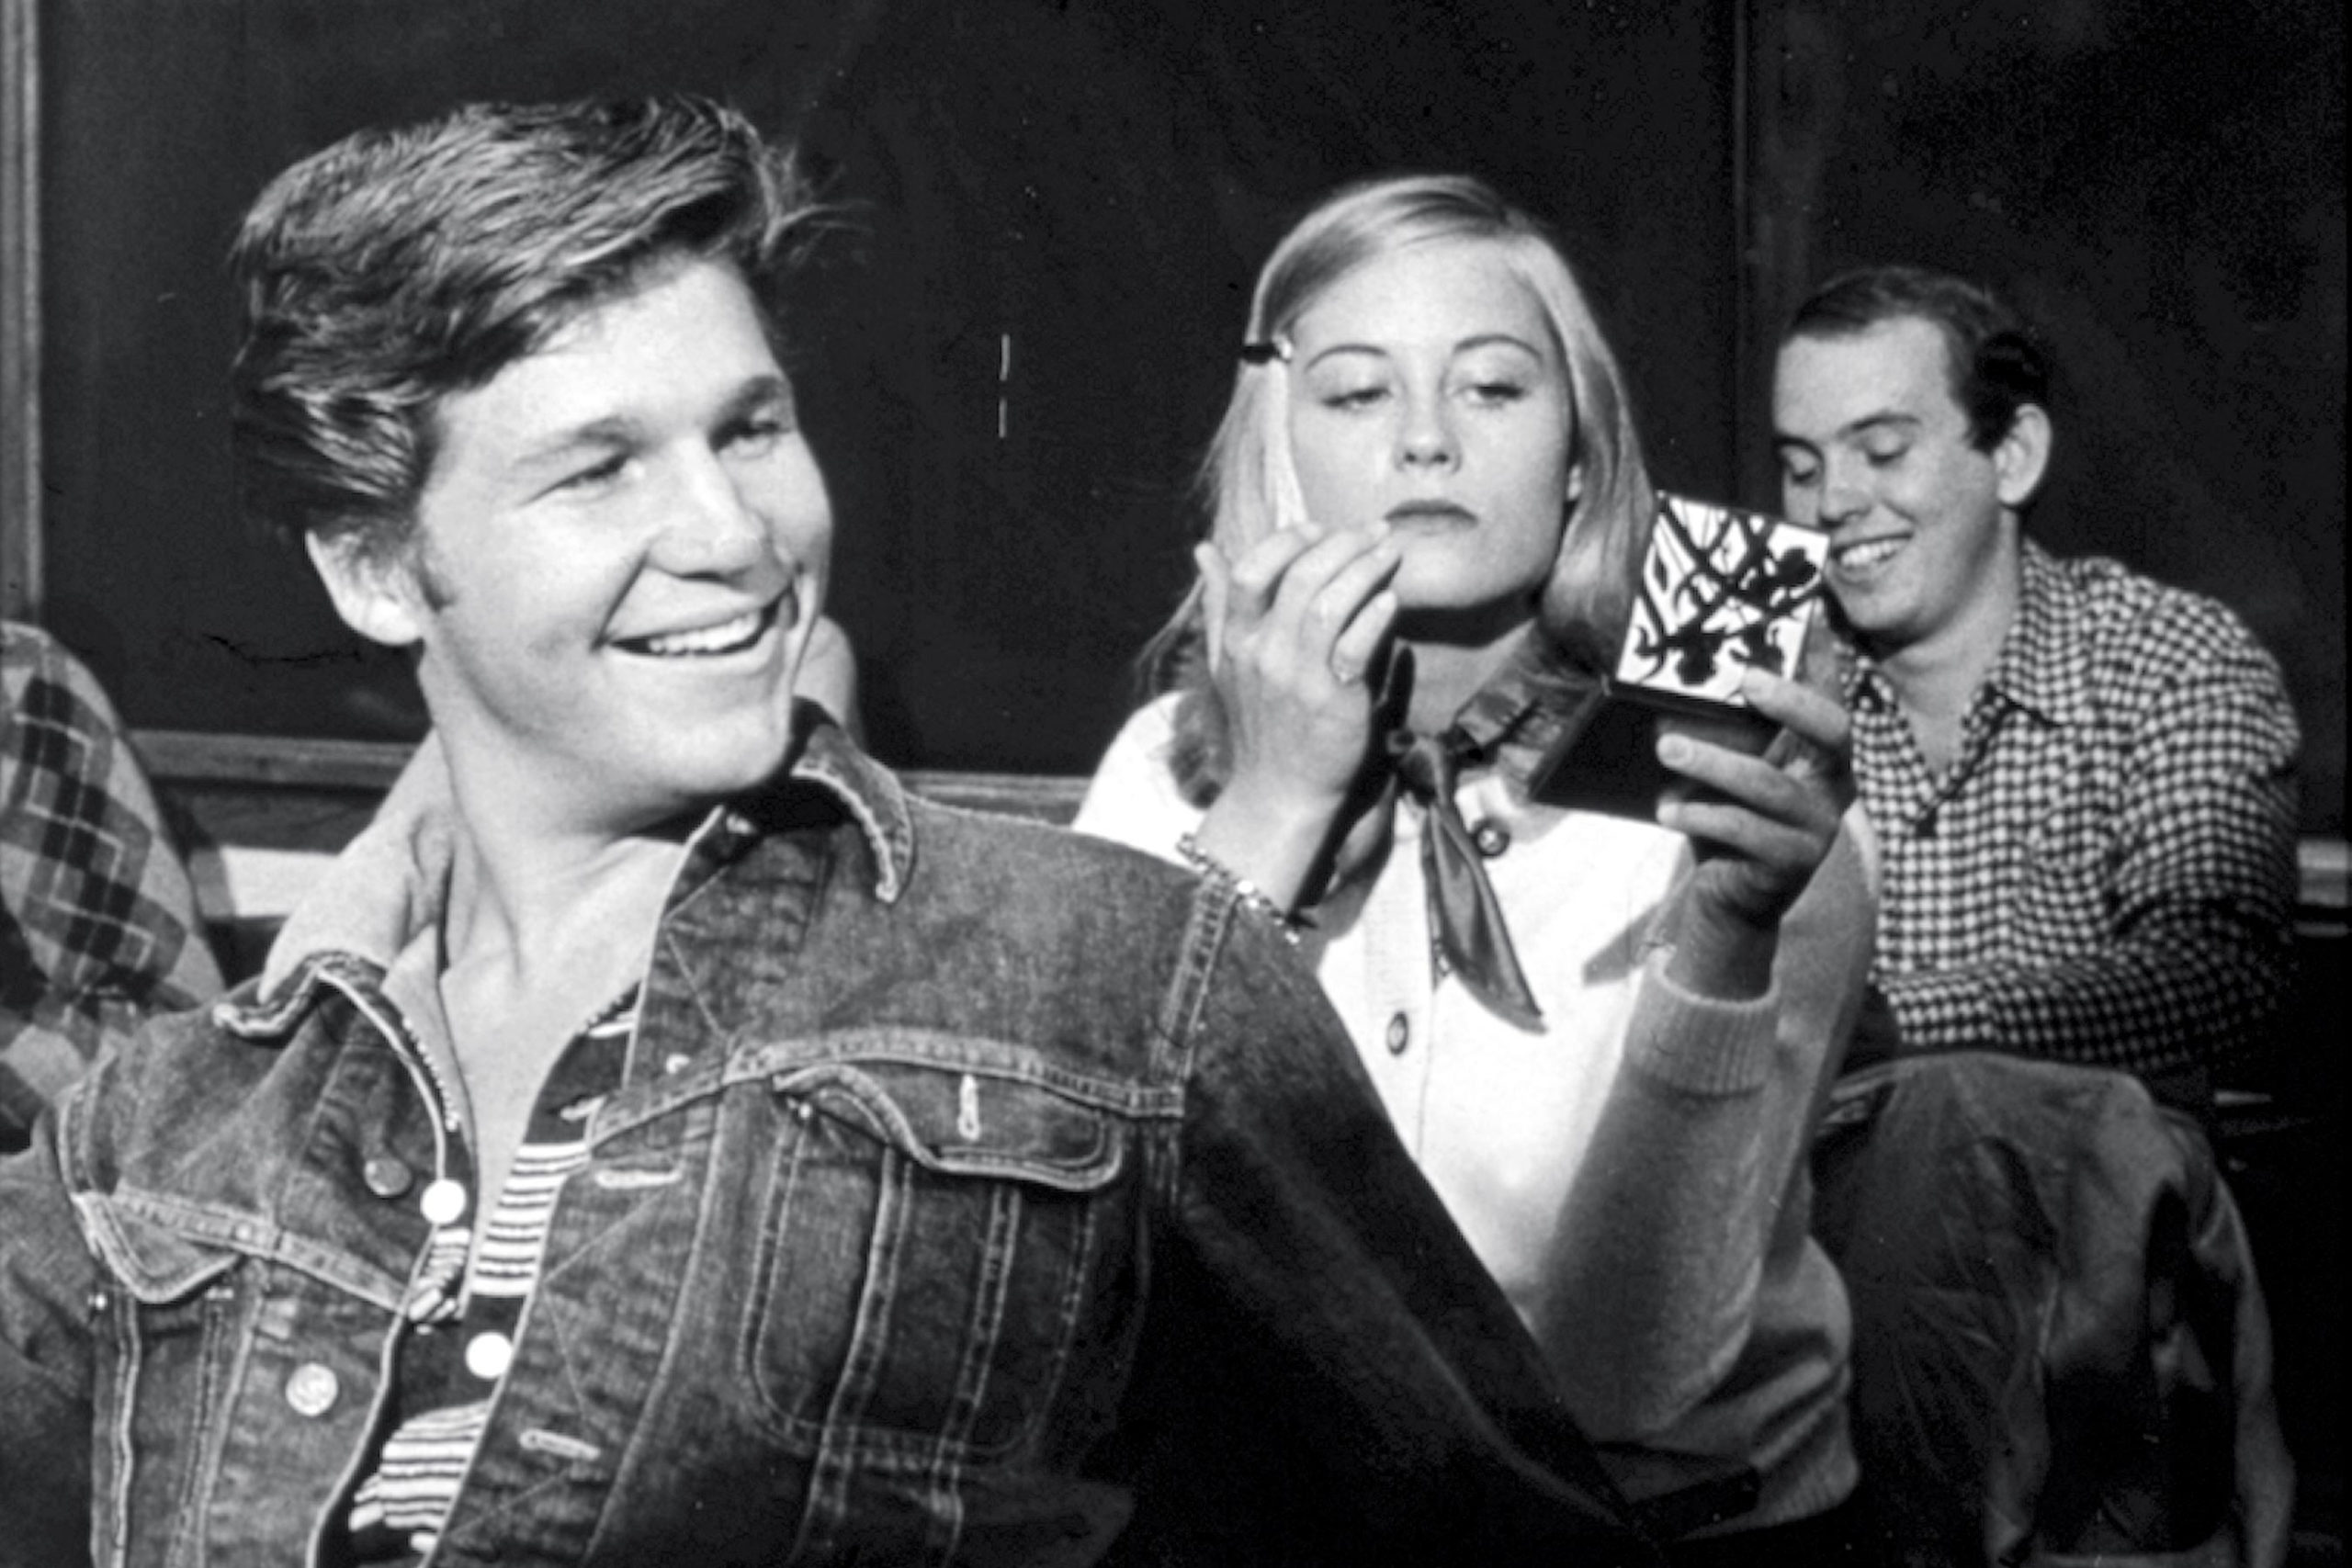 """A still image from """"The Last Picture Show,"""" by Peter Bogdanovich (1971)."""